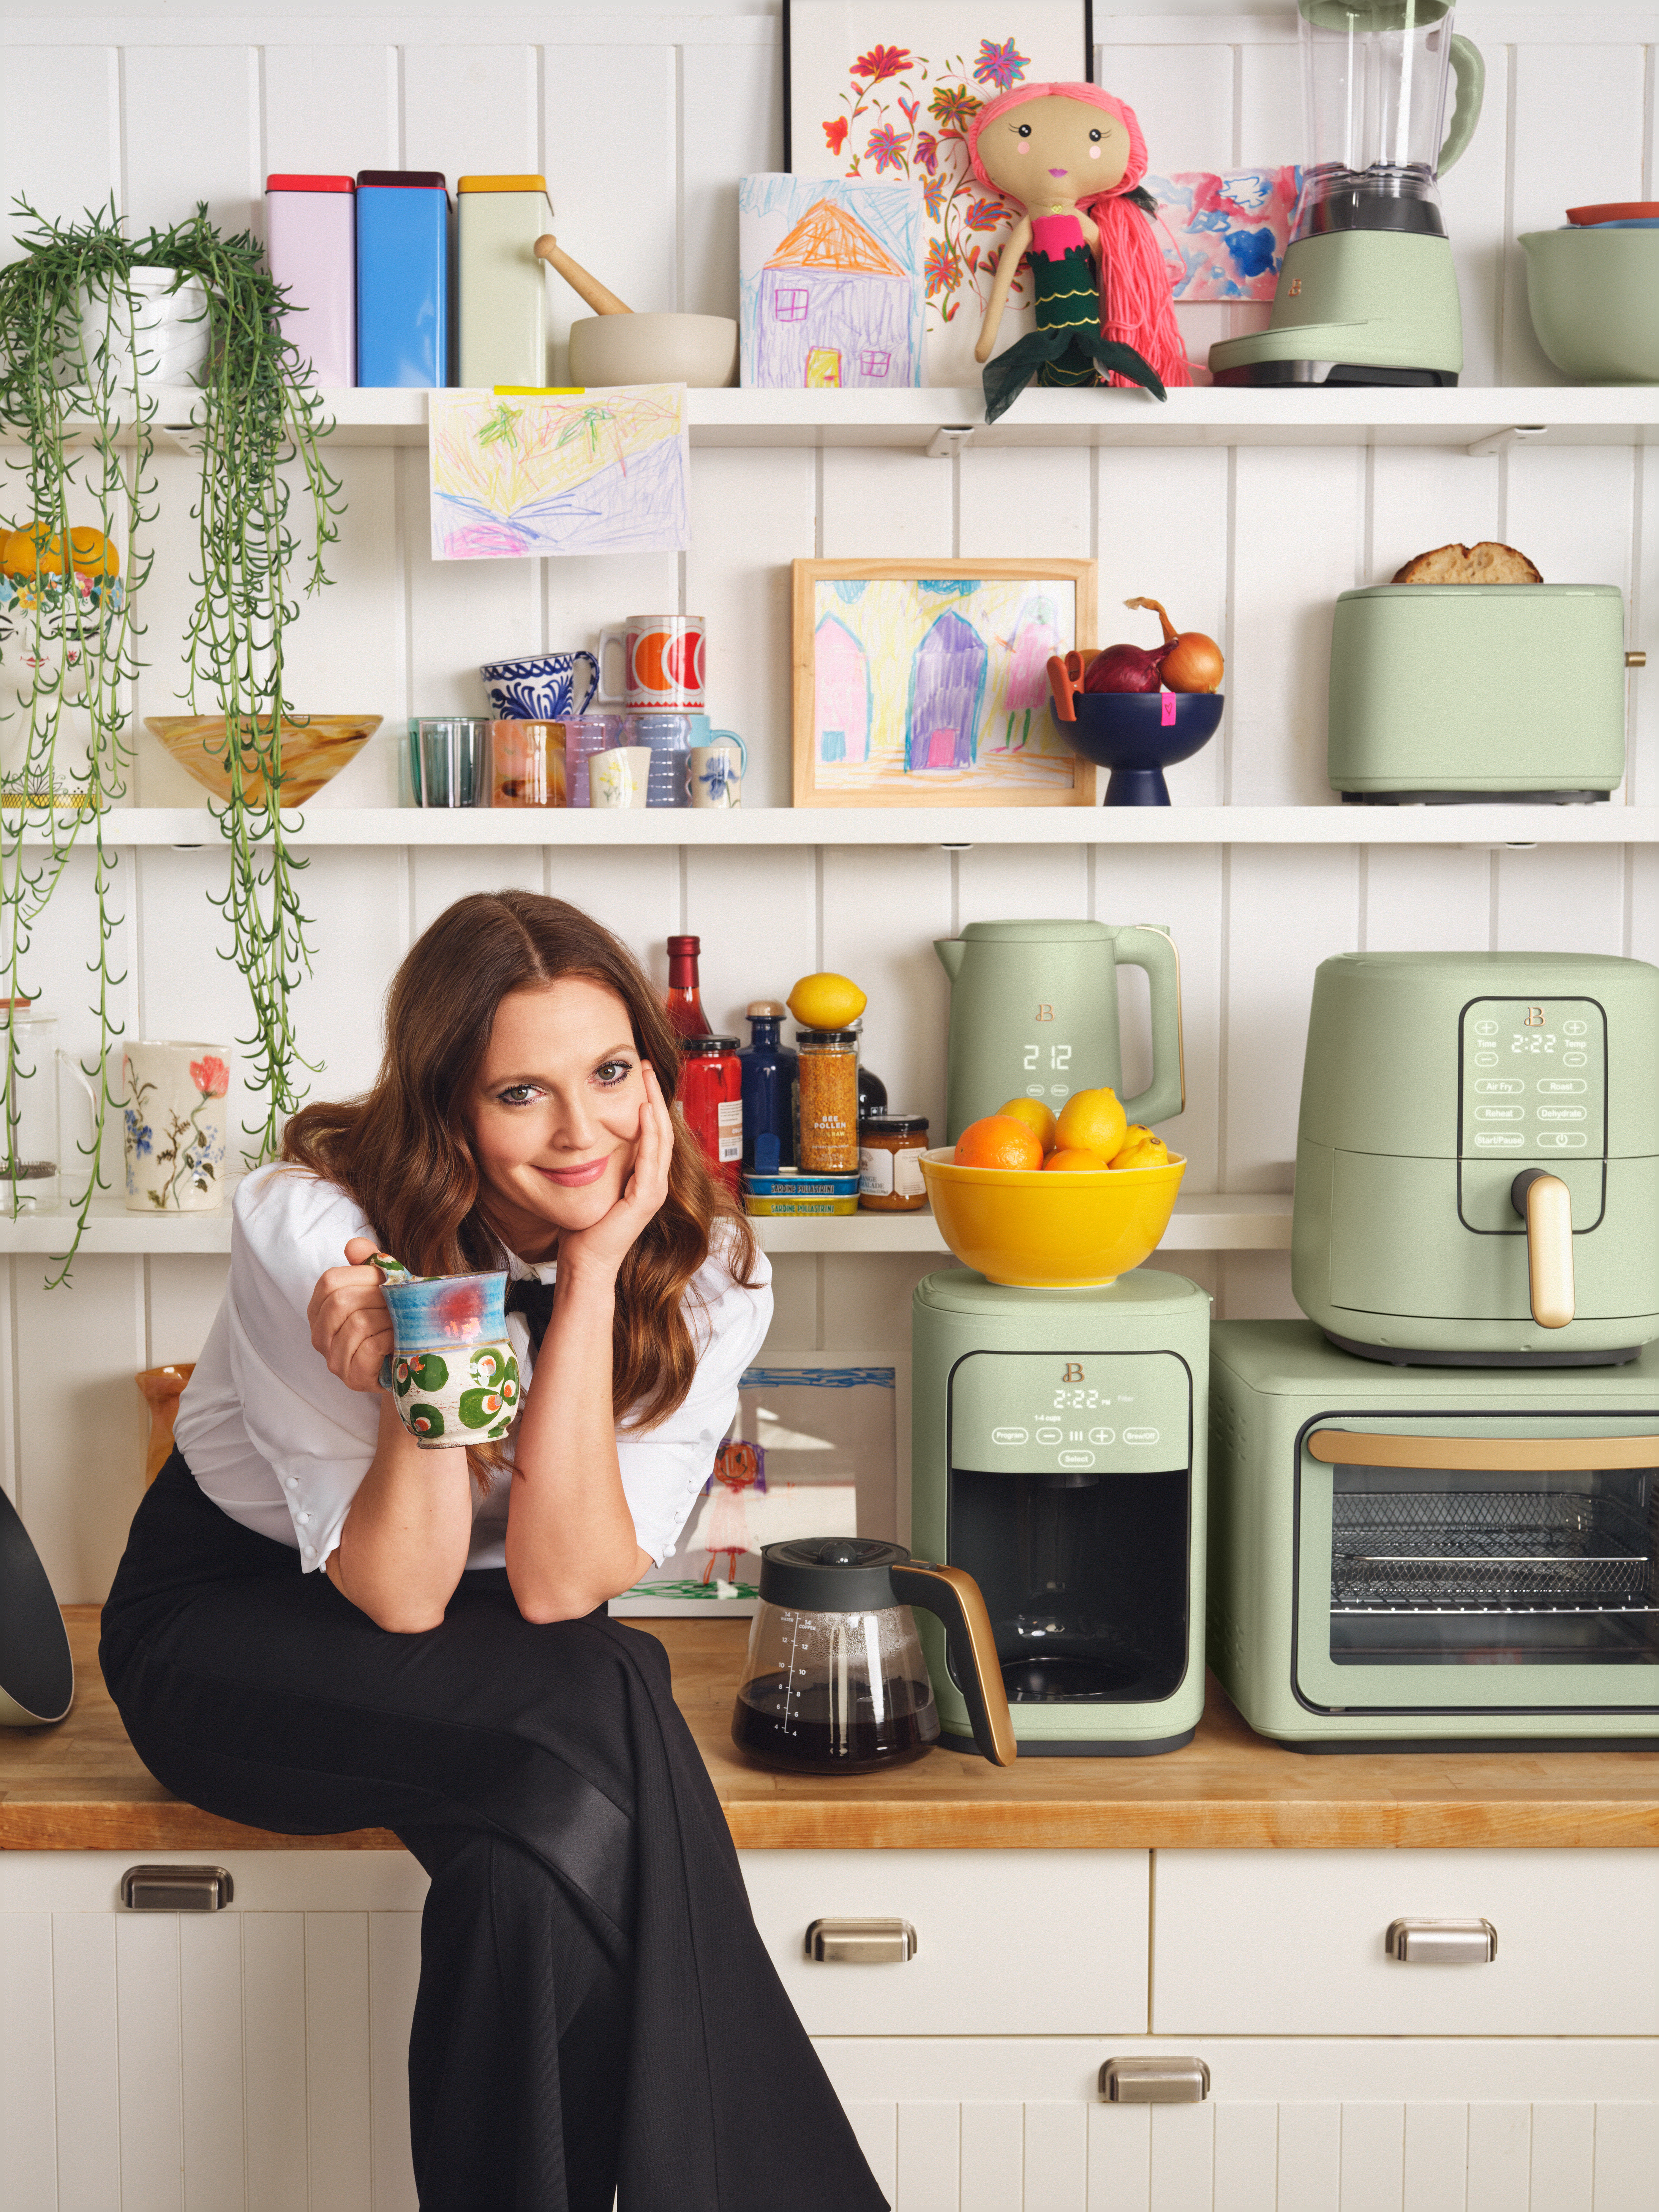 Drew Barrymore Beautiful Kitchenware Brand at Walmart